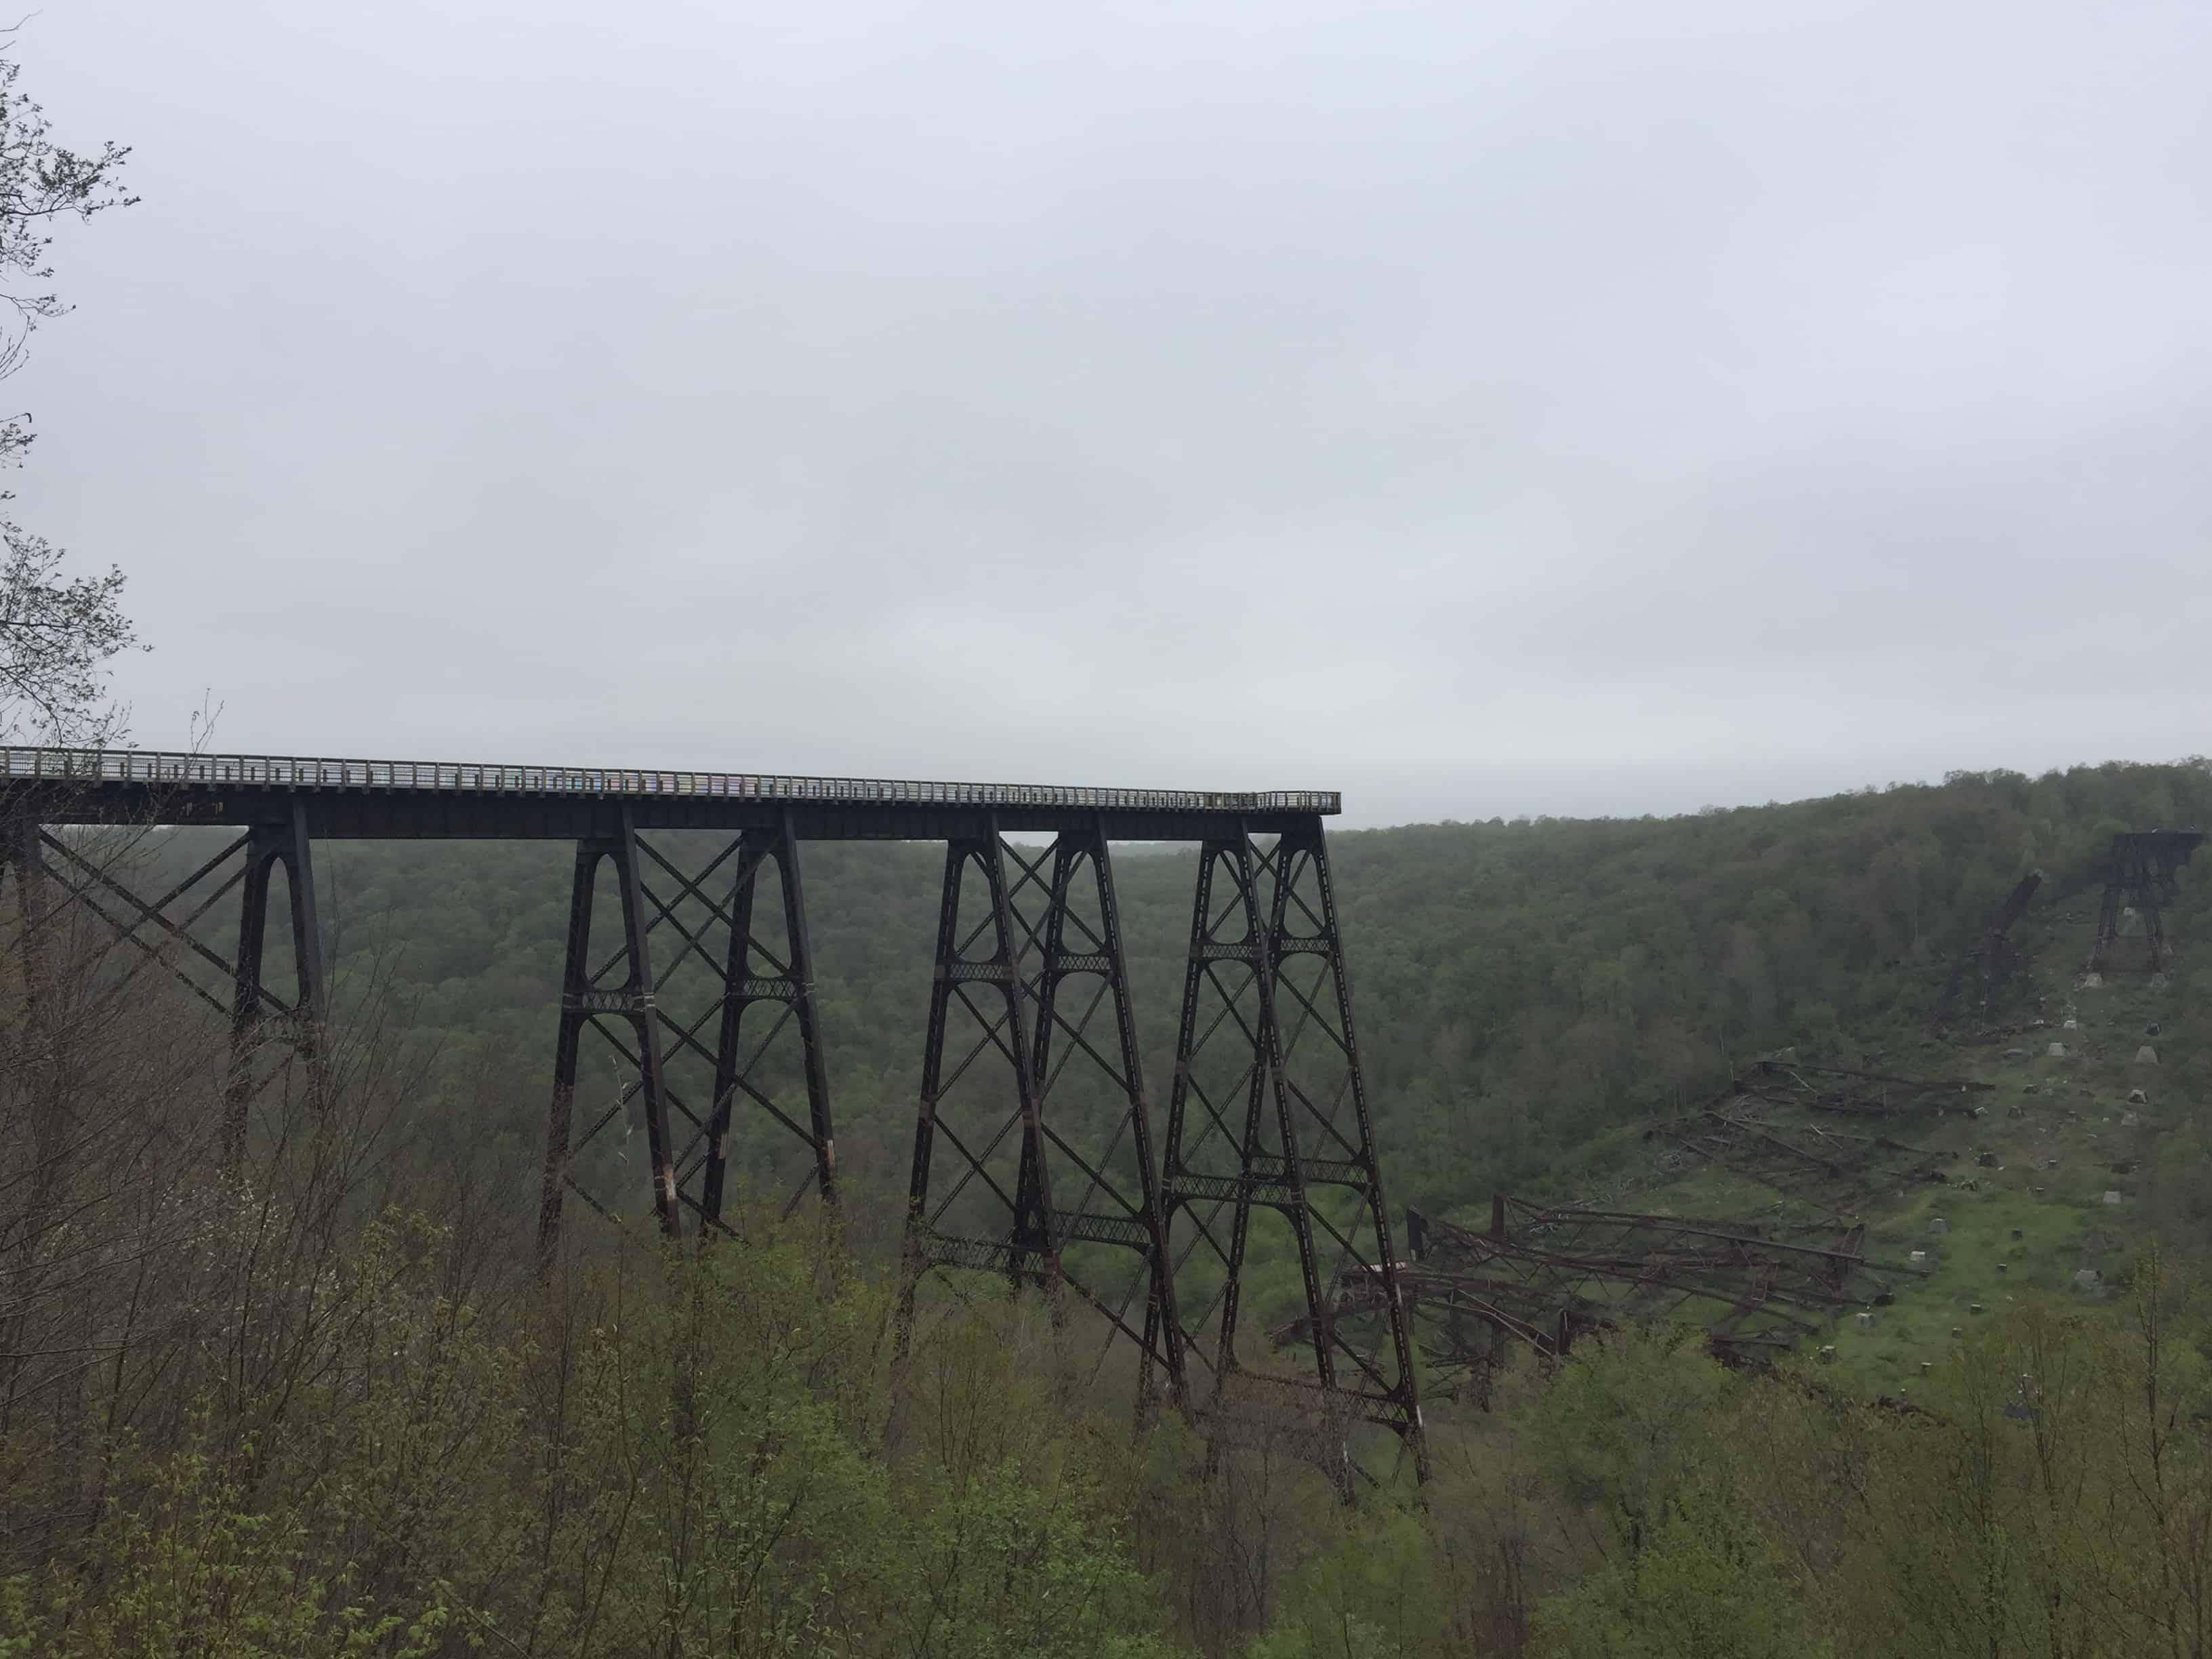 kinzua bride state park- skywalk